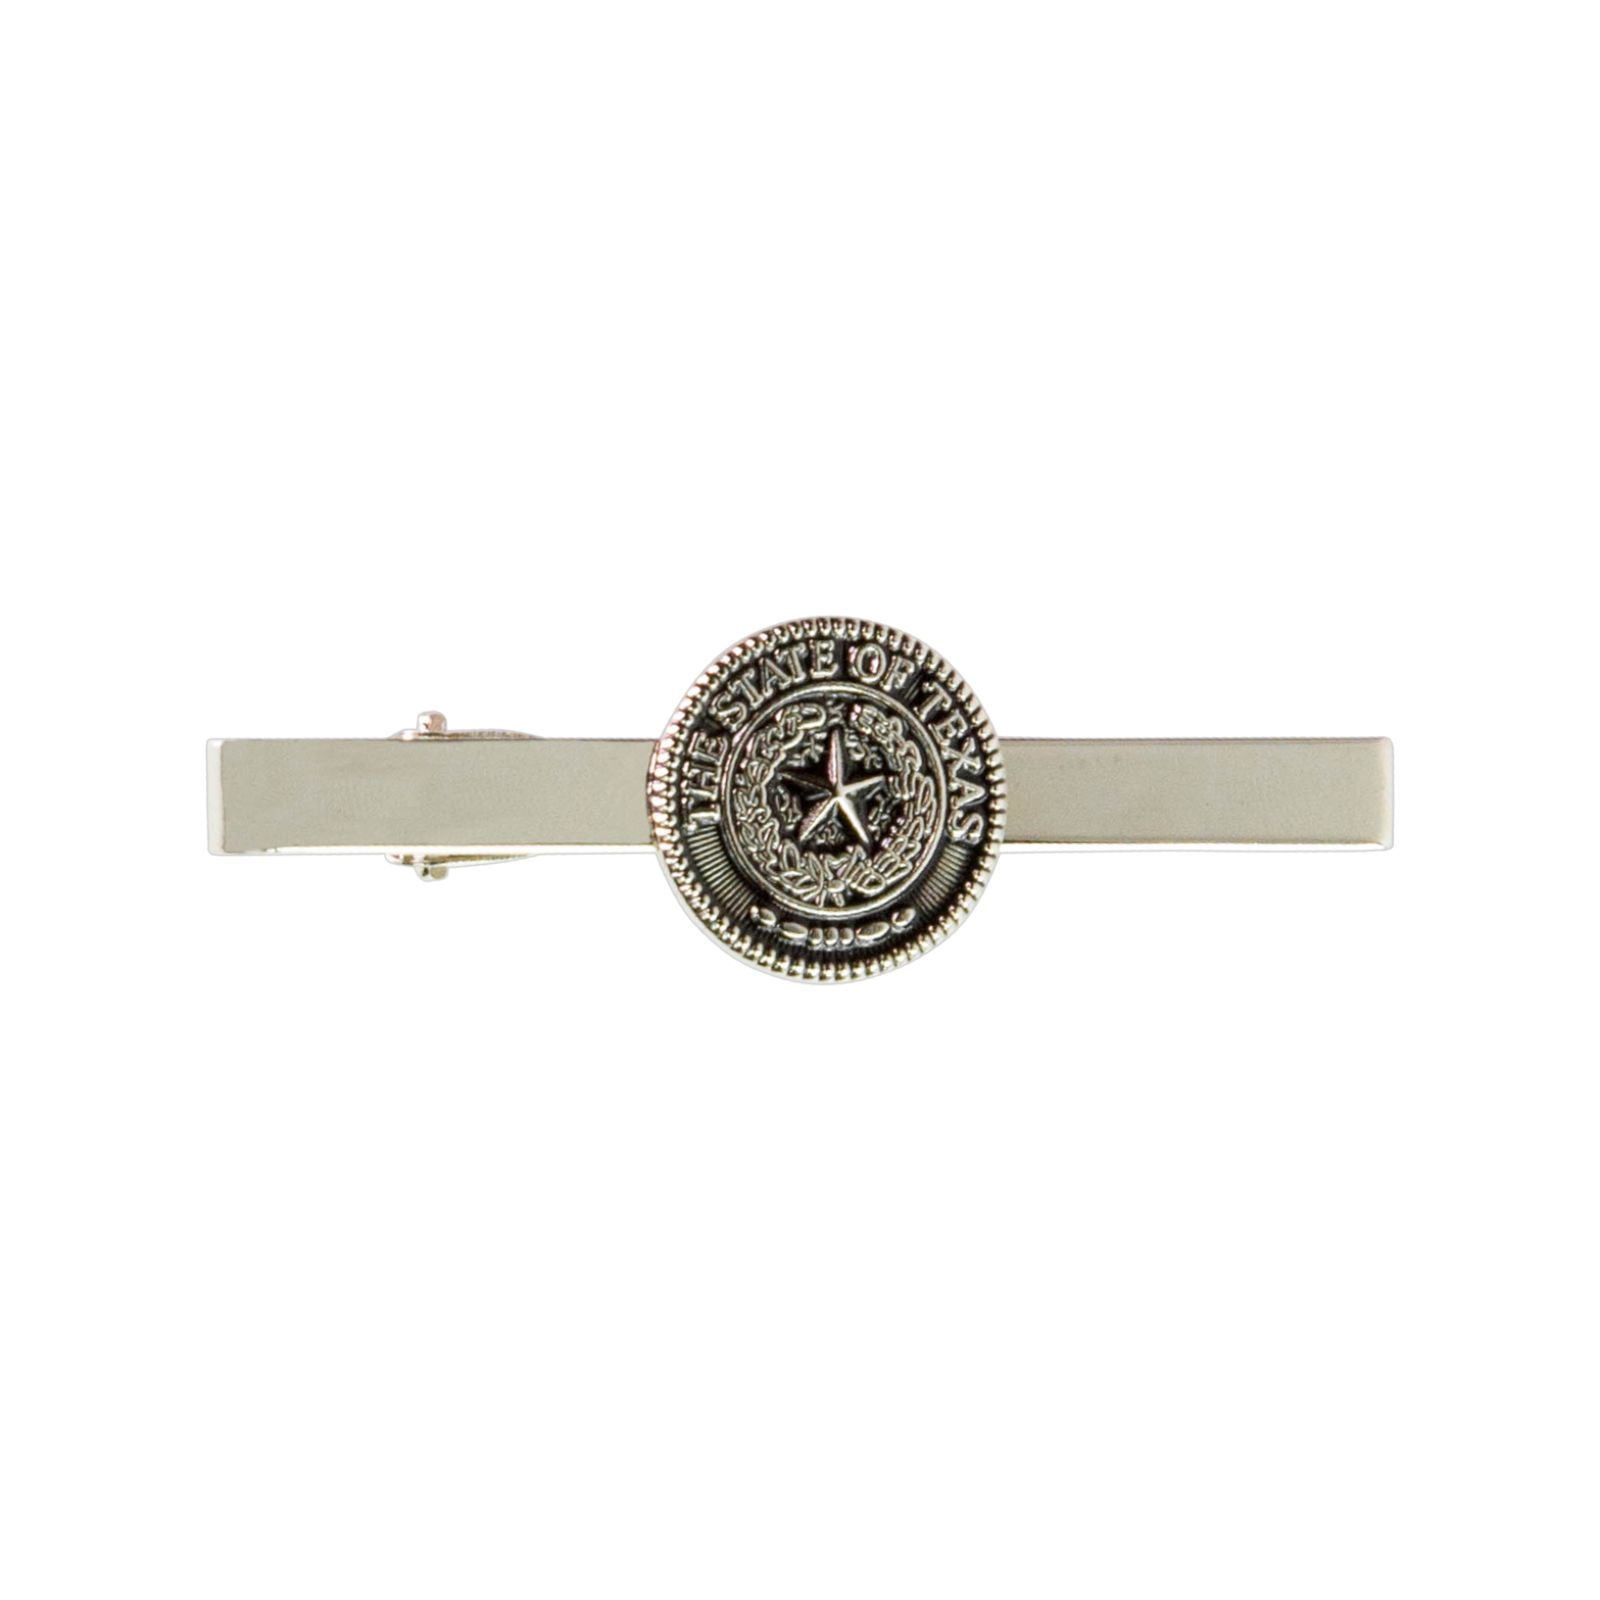 Texas State Seal Silver Tone Tie Bar